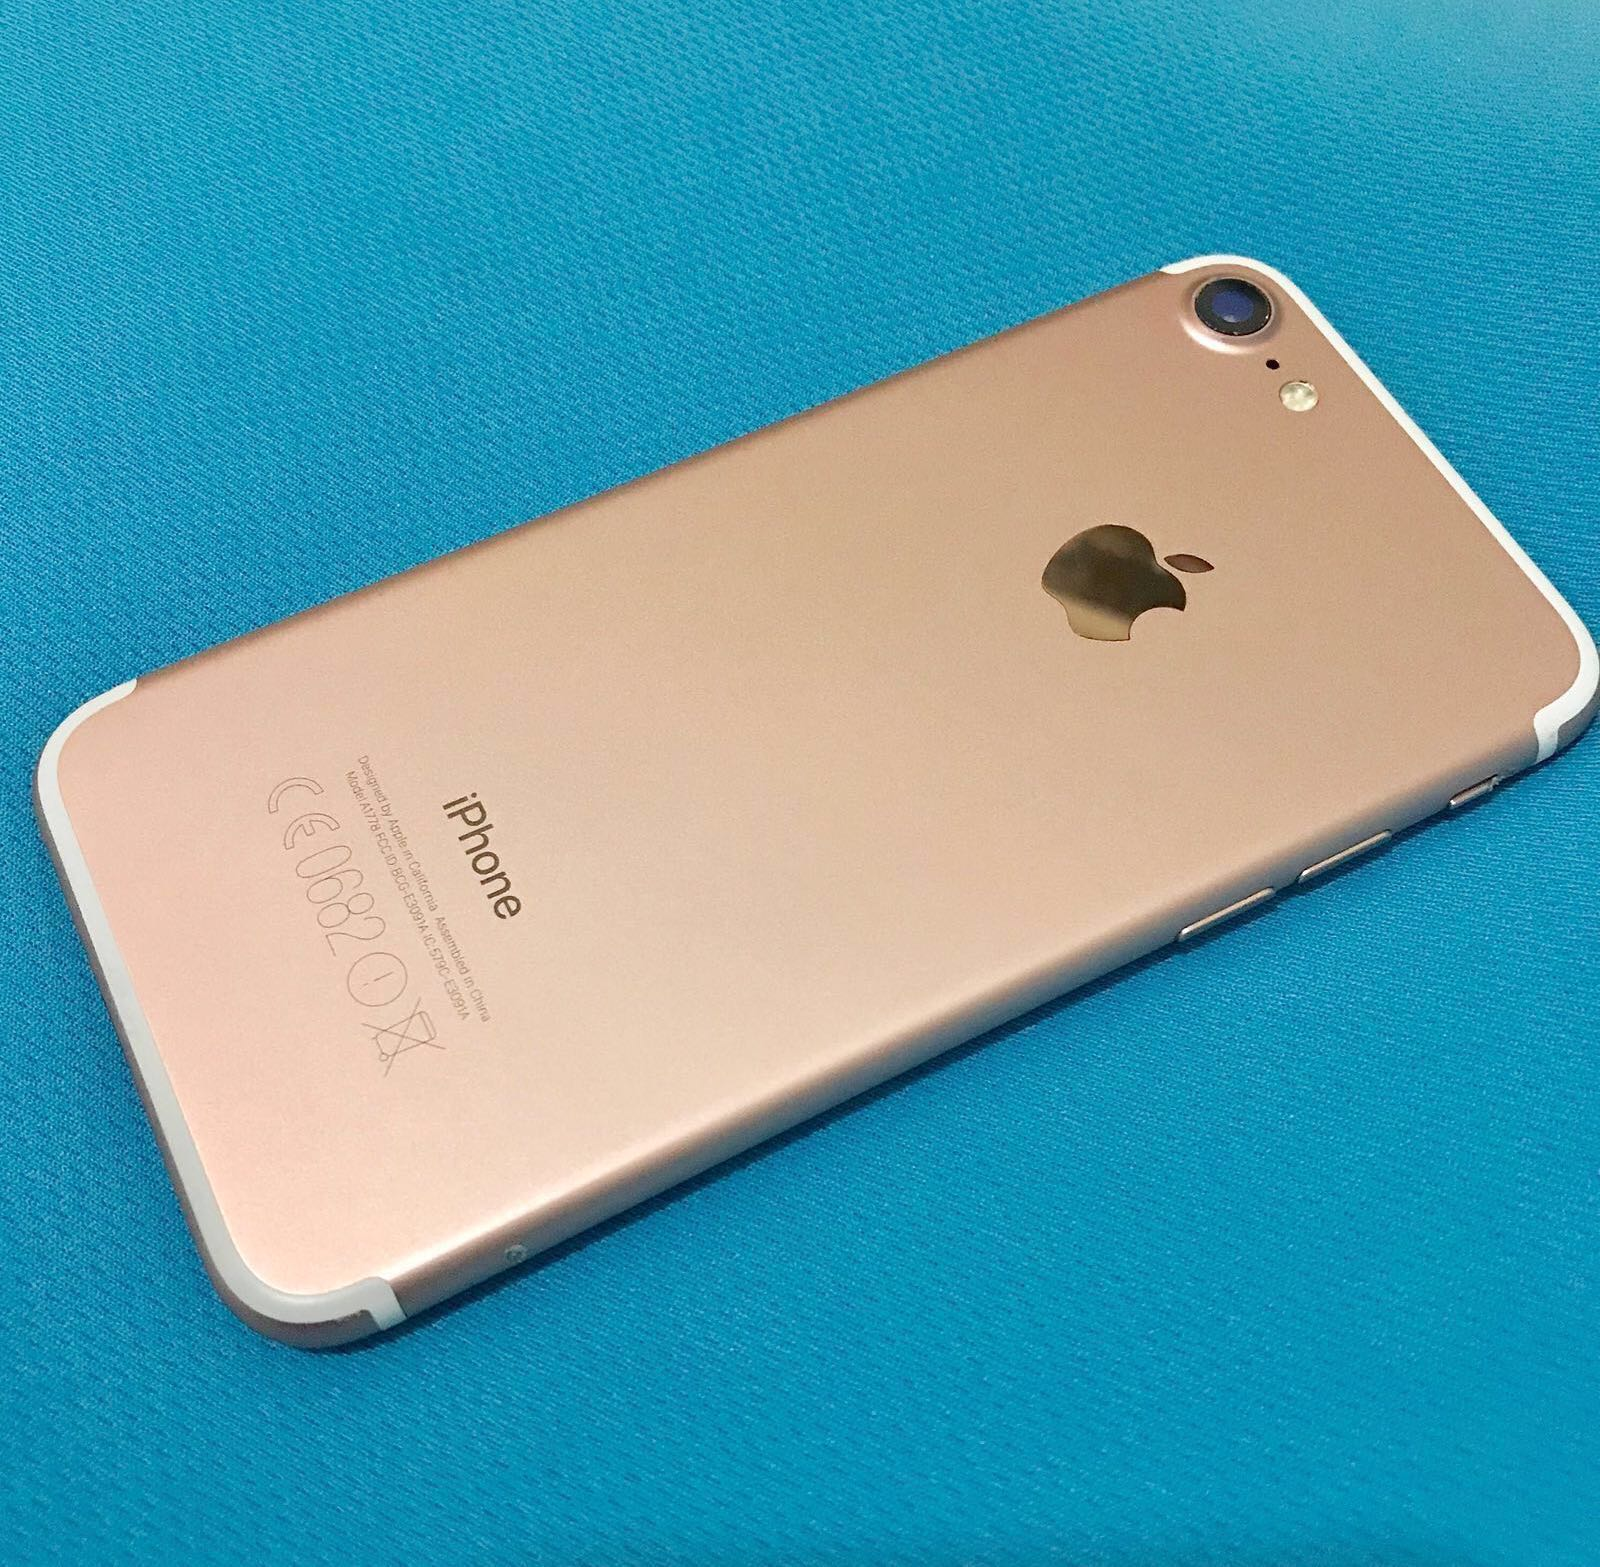 Iphone 7 32gb Rose Gold Mobiles Tablets Series 32 Gb Photo